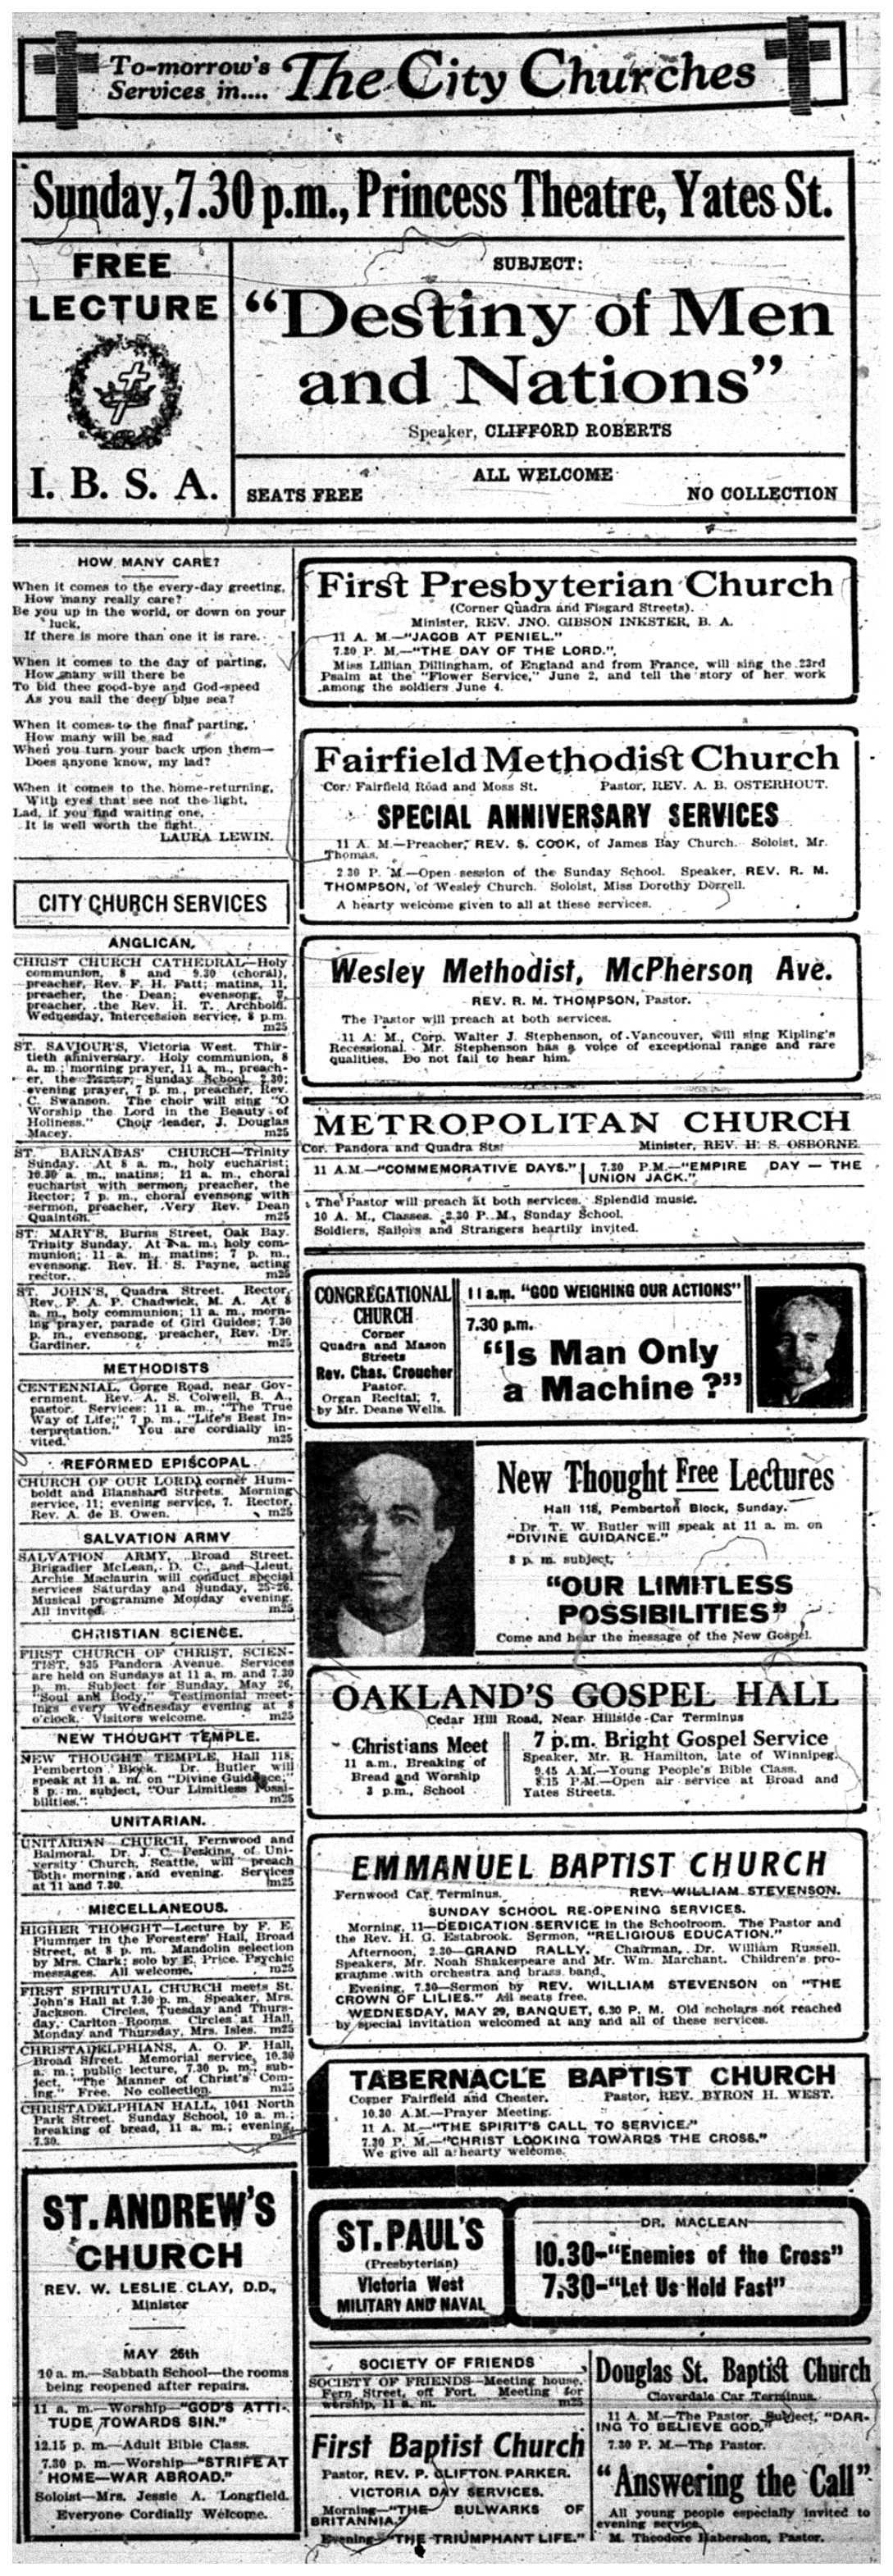 """To-morrow's Services in the City's Churches"""